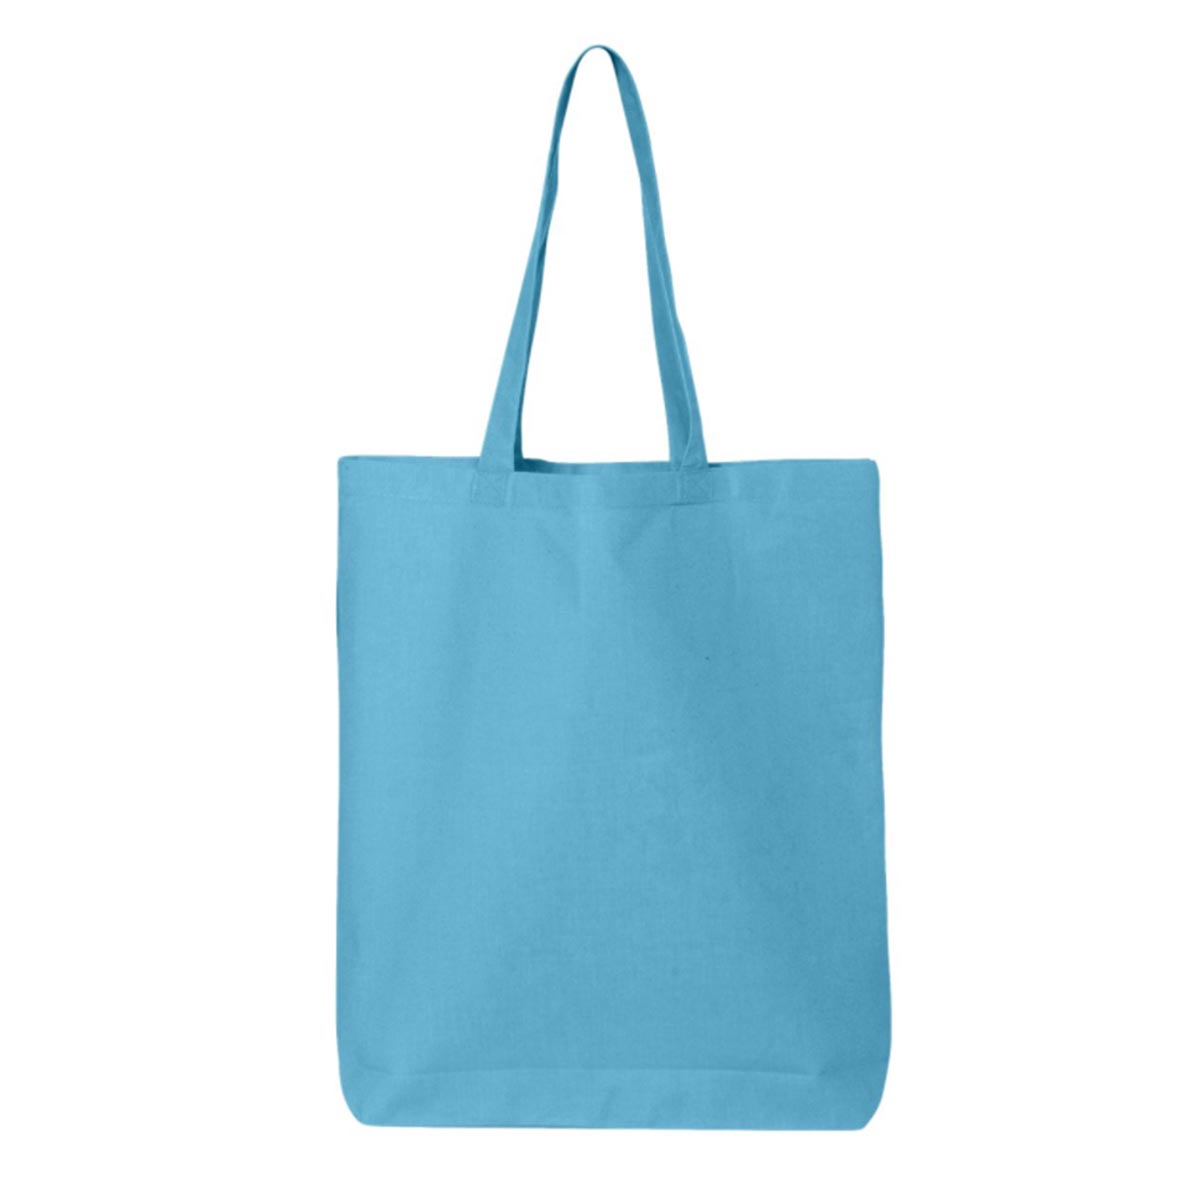 Teal gusset tote light